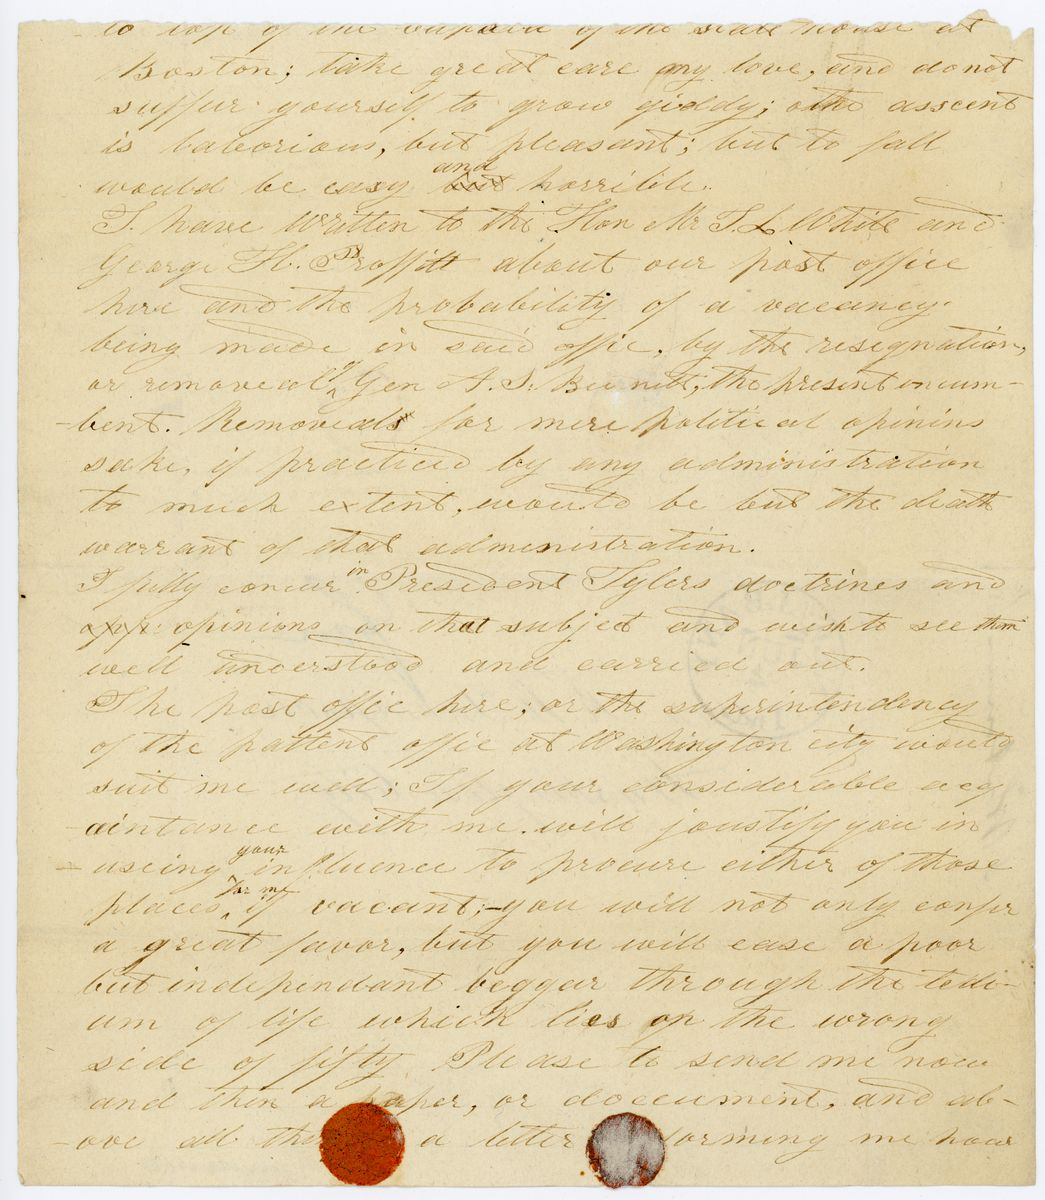 Image: Letter from S. Whitman to Richard W. Thompson